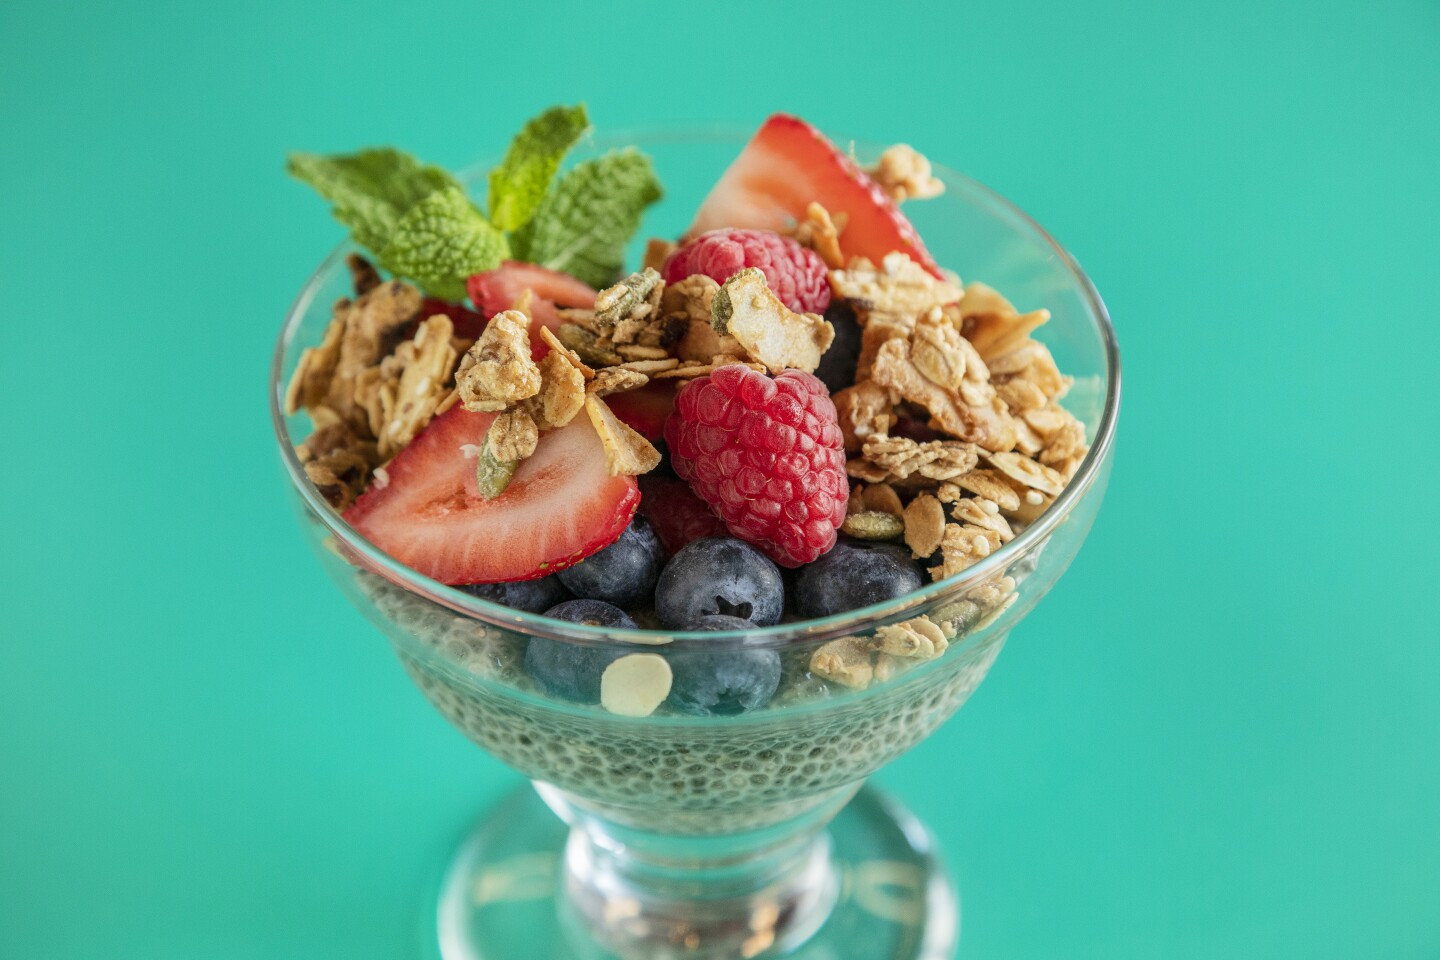 SANTA MONICA, CA - OCTOBER 21, 2019 - Breakfast granola: Sweet housemade granola (smaller bowl) - oat milk yogurt or straus yogurt with chia passion fruit and berries, at Socalo, a soon to be open Mexican restaurant in Santa Monica, October 21, 2019. (Ricardo DeAratanha / Los Angeles Times)